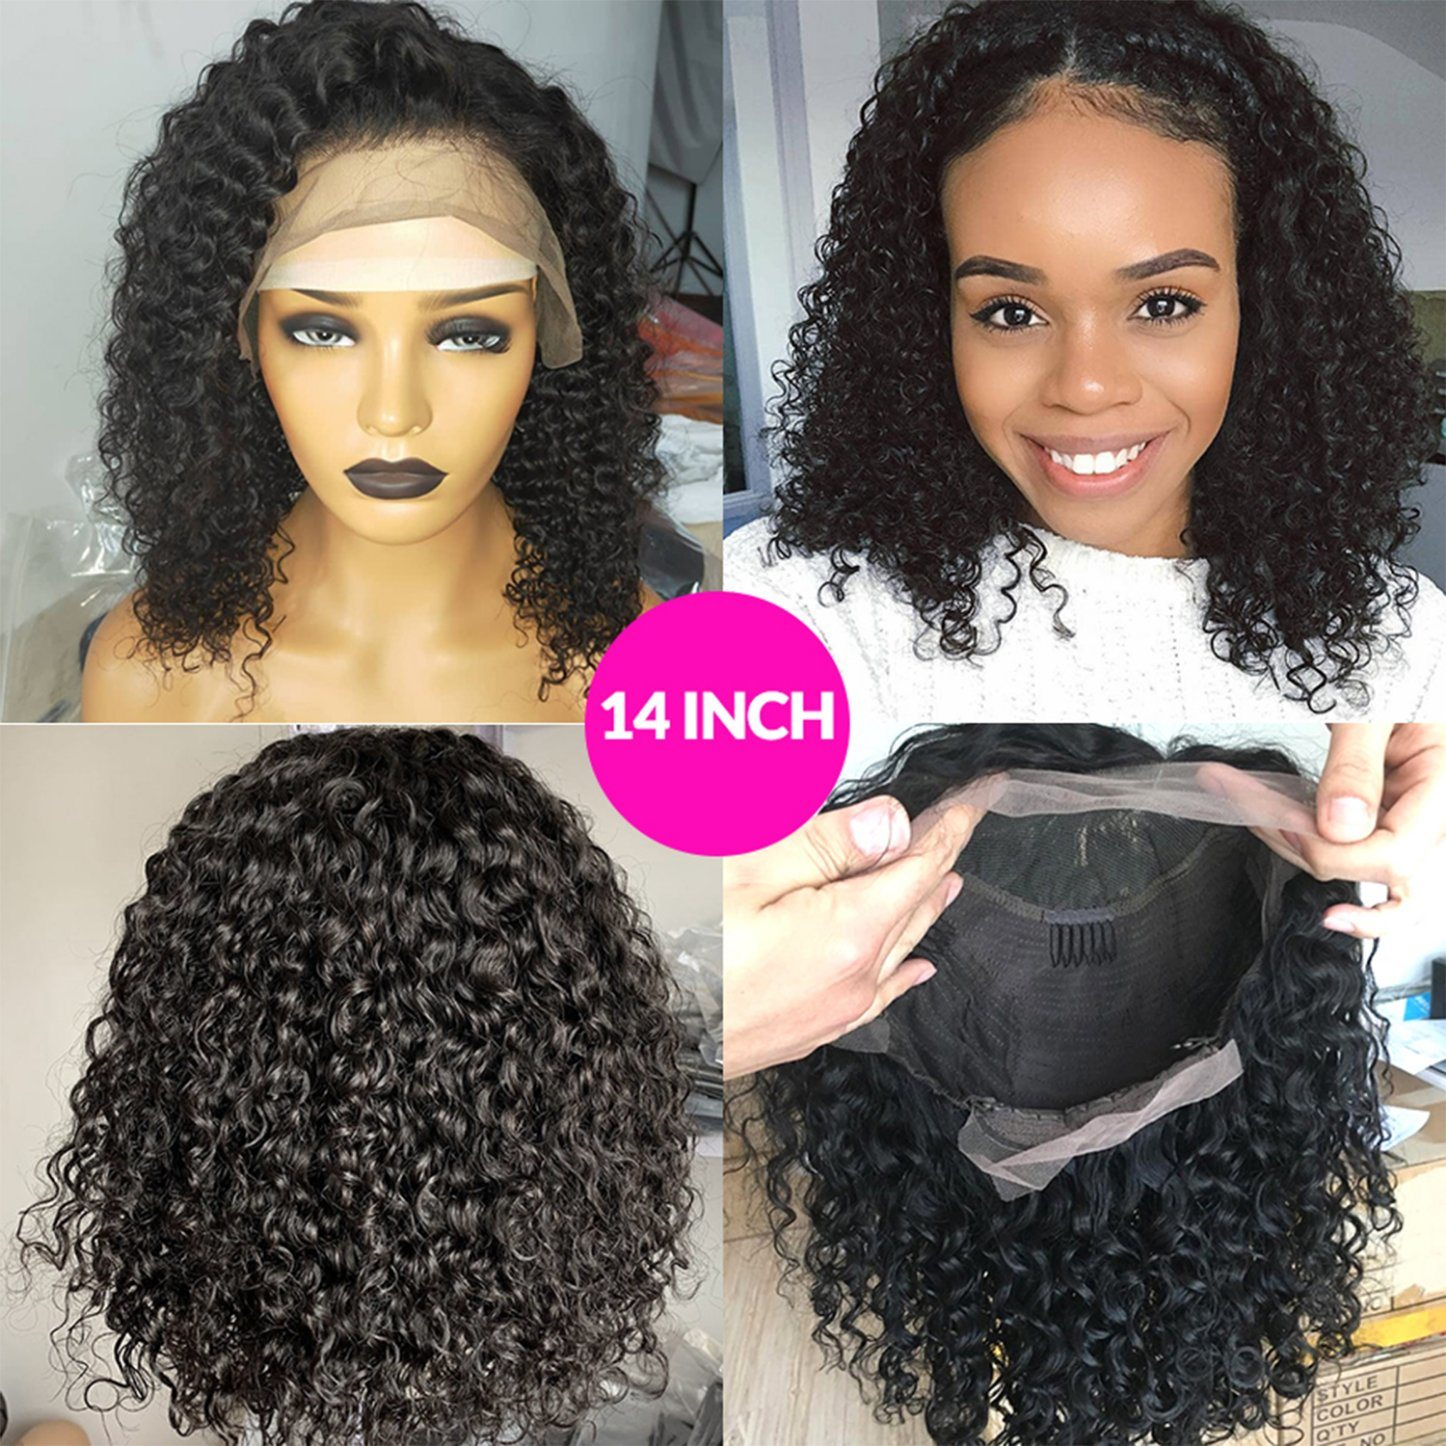 China Short Bob Lace Frontal Wigs 150 Density Deep Curly Lace Front Human Hair Wig 14inch Photos Pictures Made In China Com